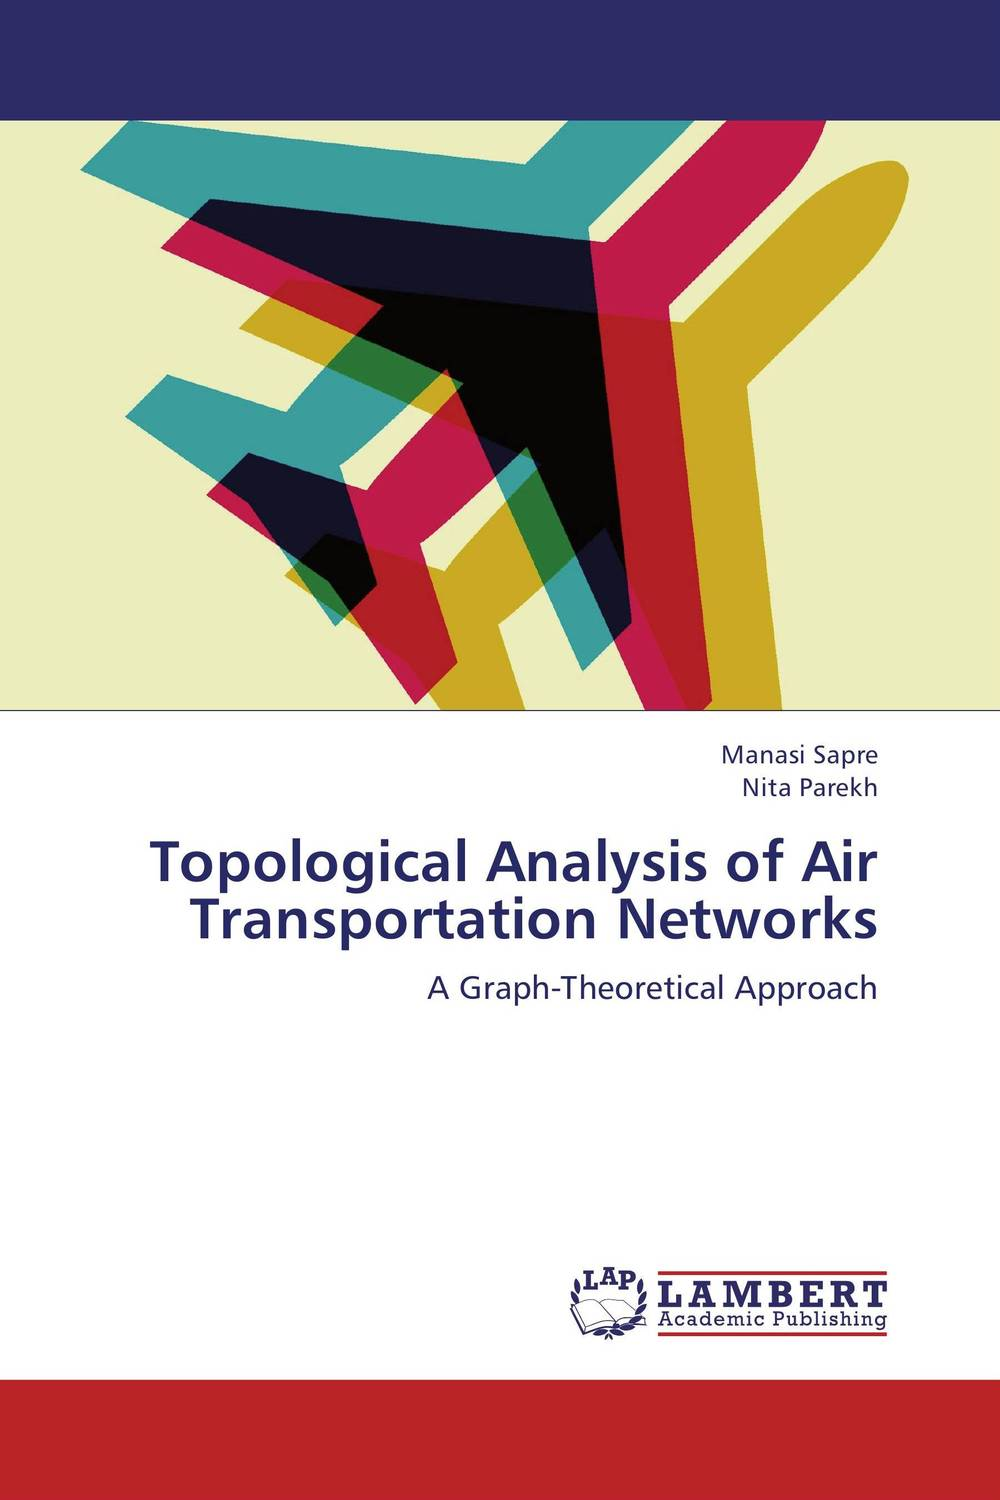 Topological Analysis of Air Transportation Networks traffic analysis of mpls and non mpls network